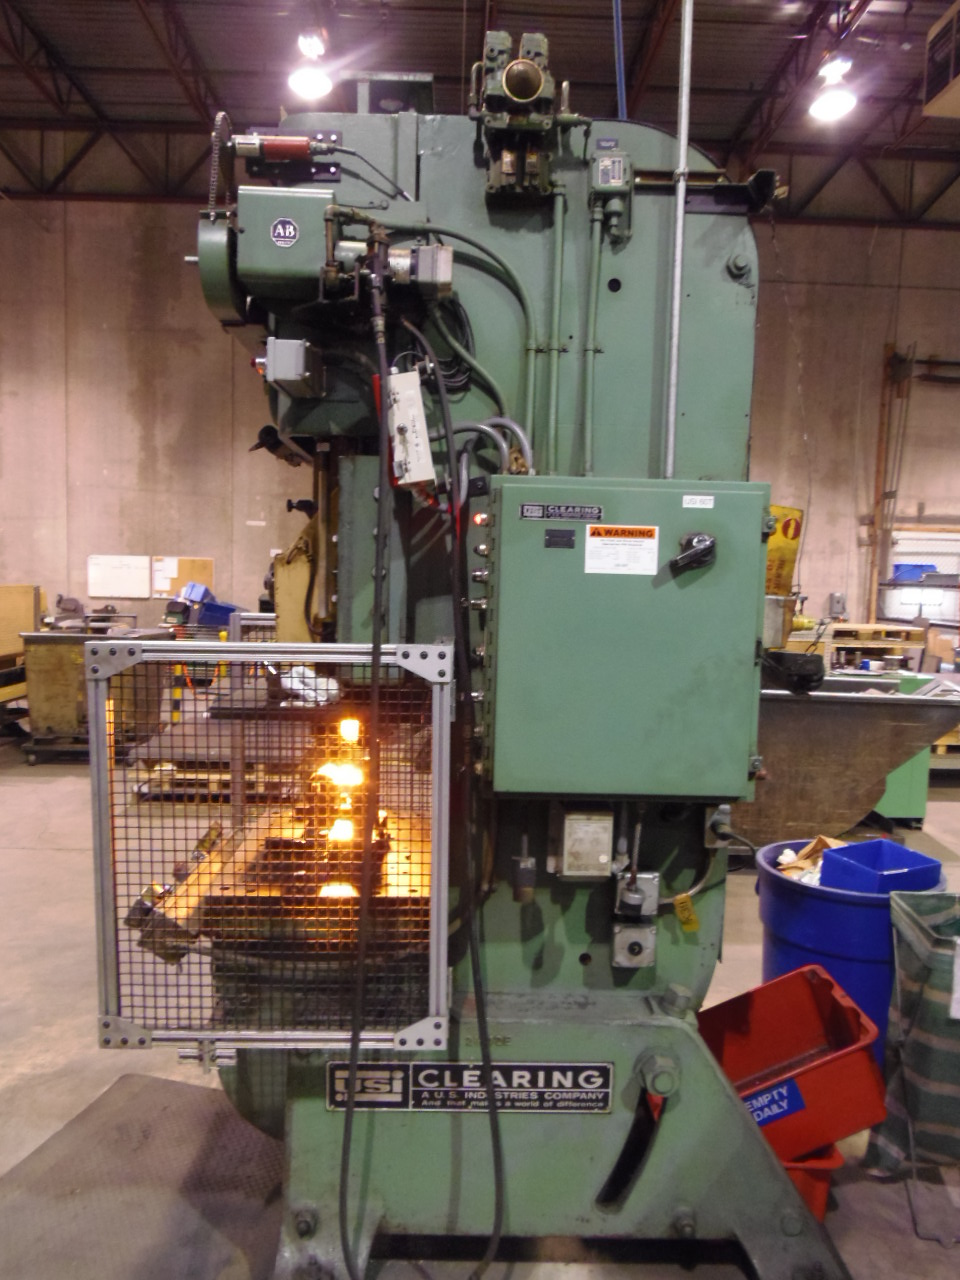 "60 TON - USI CLEARING (TORC-PAC), O.B.I. PRESS, 4"" STROKE, 60 SPM, 3"" ADJUSTMENT, 17 1/4"" SHUT HEIGHT, 1973"